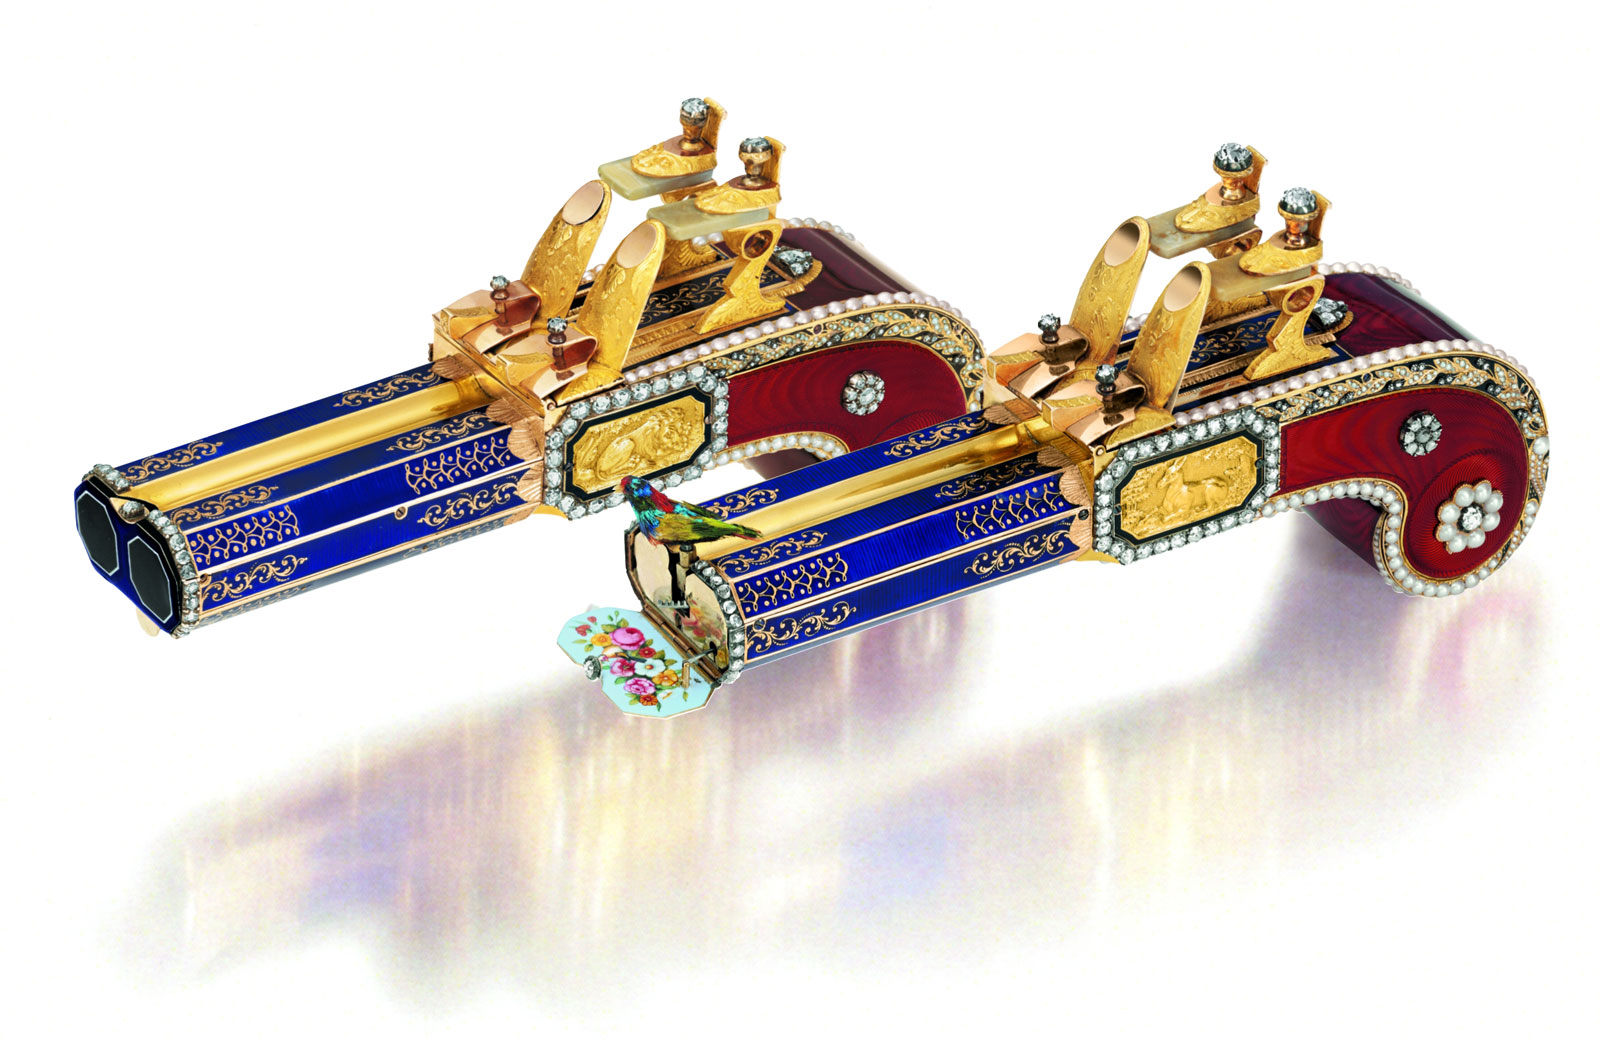 The Only Pair of Matching Singing Bird Pistols Sell for $5.8 Million